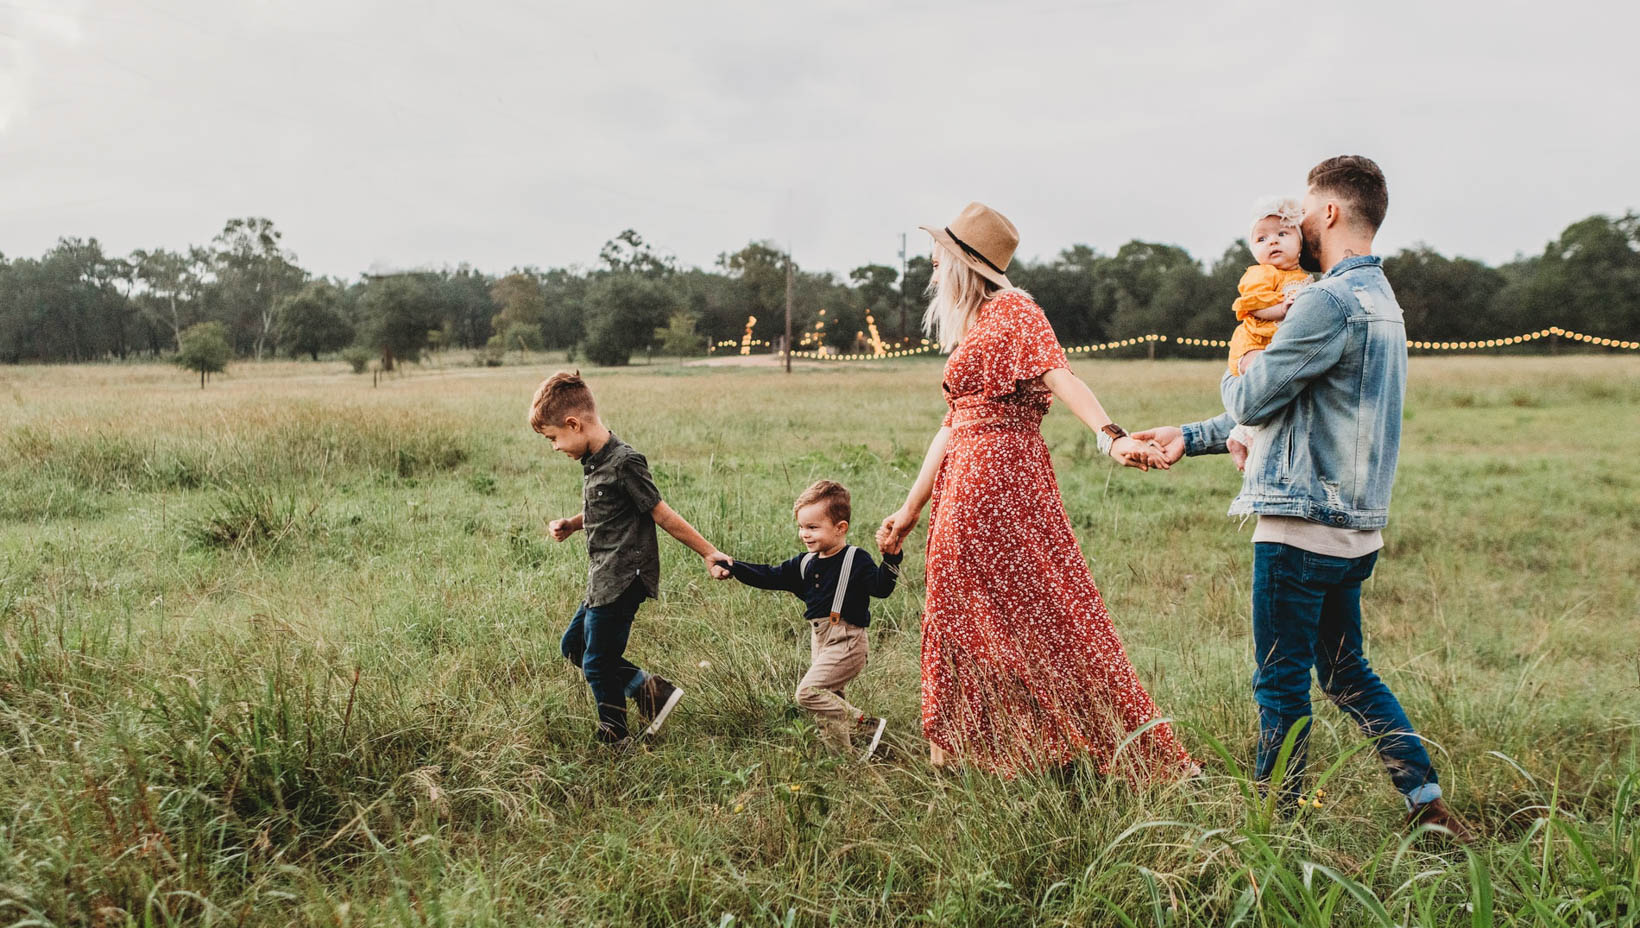 Family with kids walking in a field